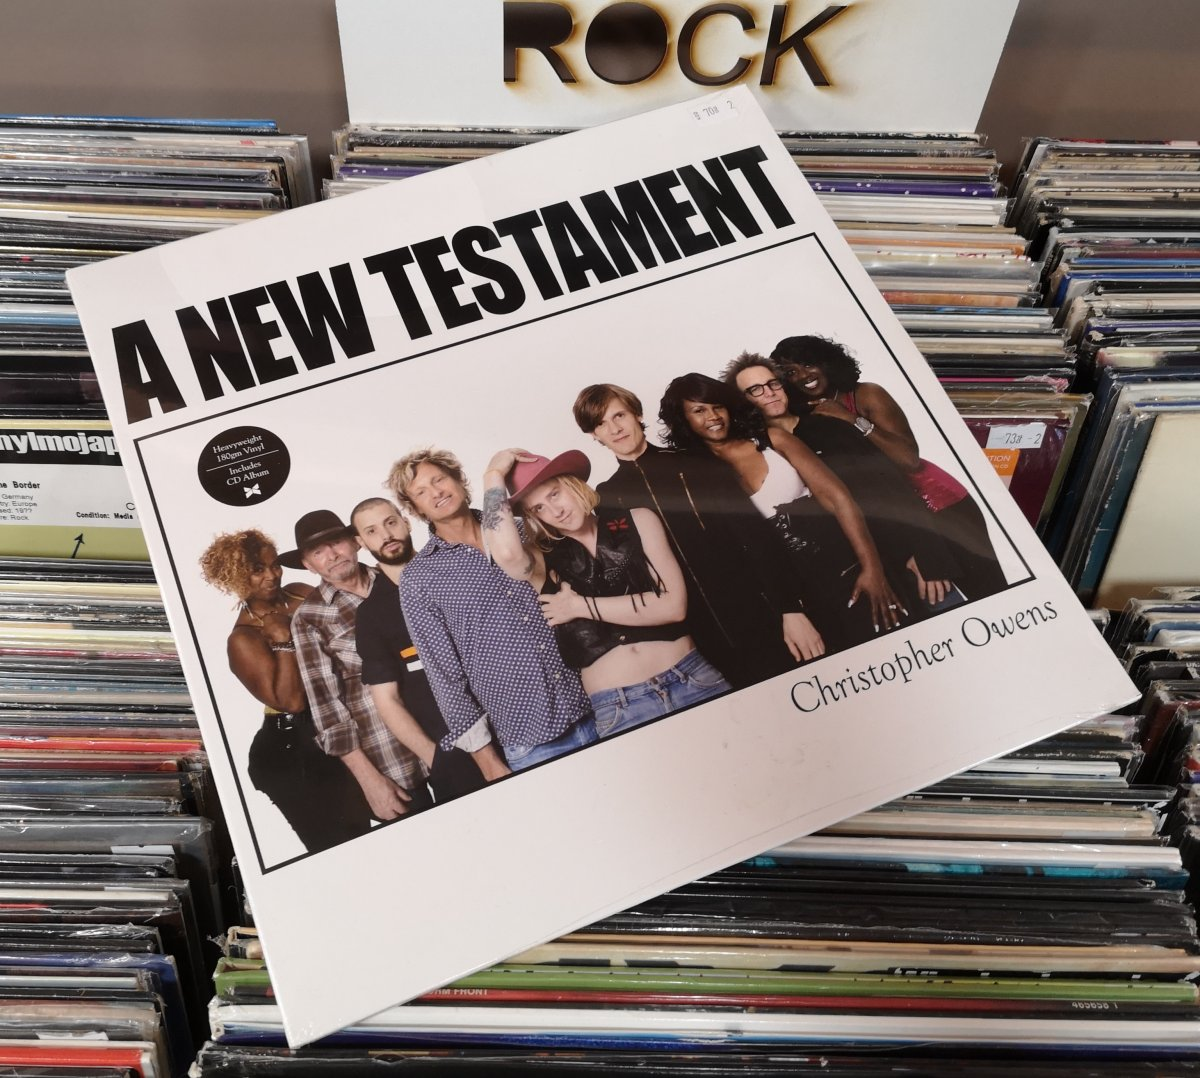 Christopher Owens - A New Testament + CD, 2014r. UK